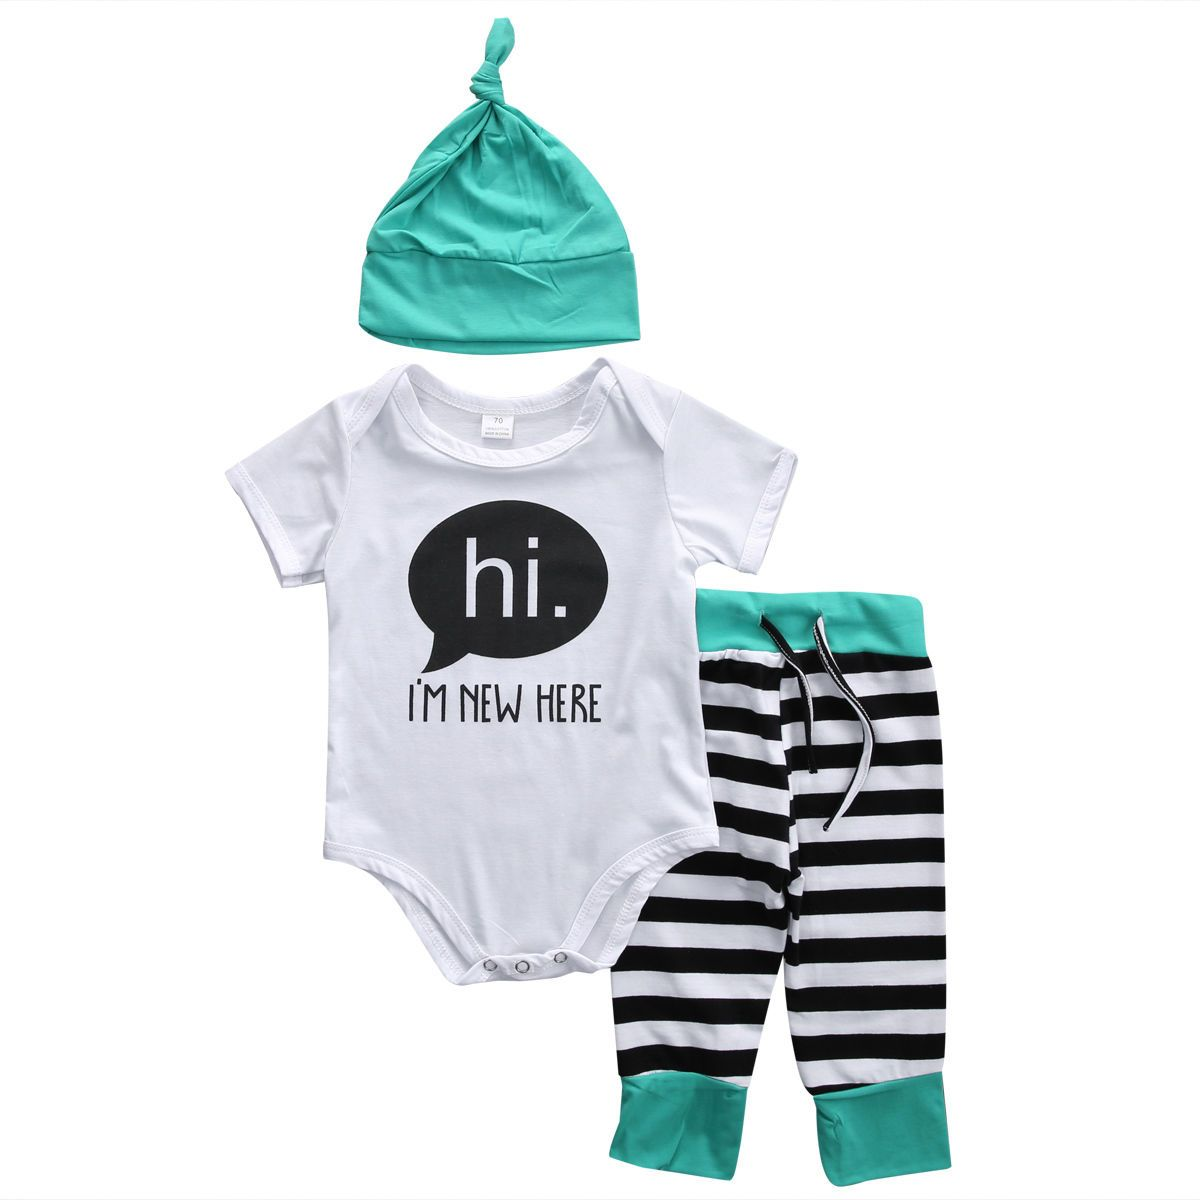 3Pcs Newborn Toddler Infant Baby Boys Girl Top T Shirt Bodysuit Pantsdresskily-dresskily